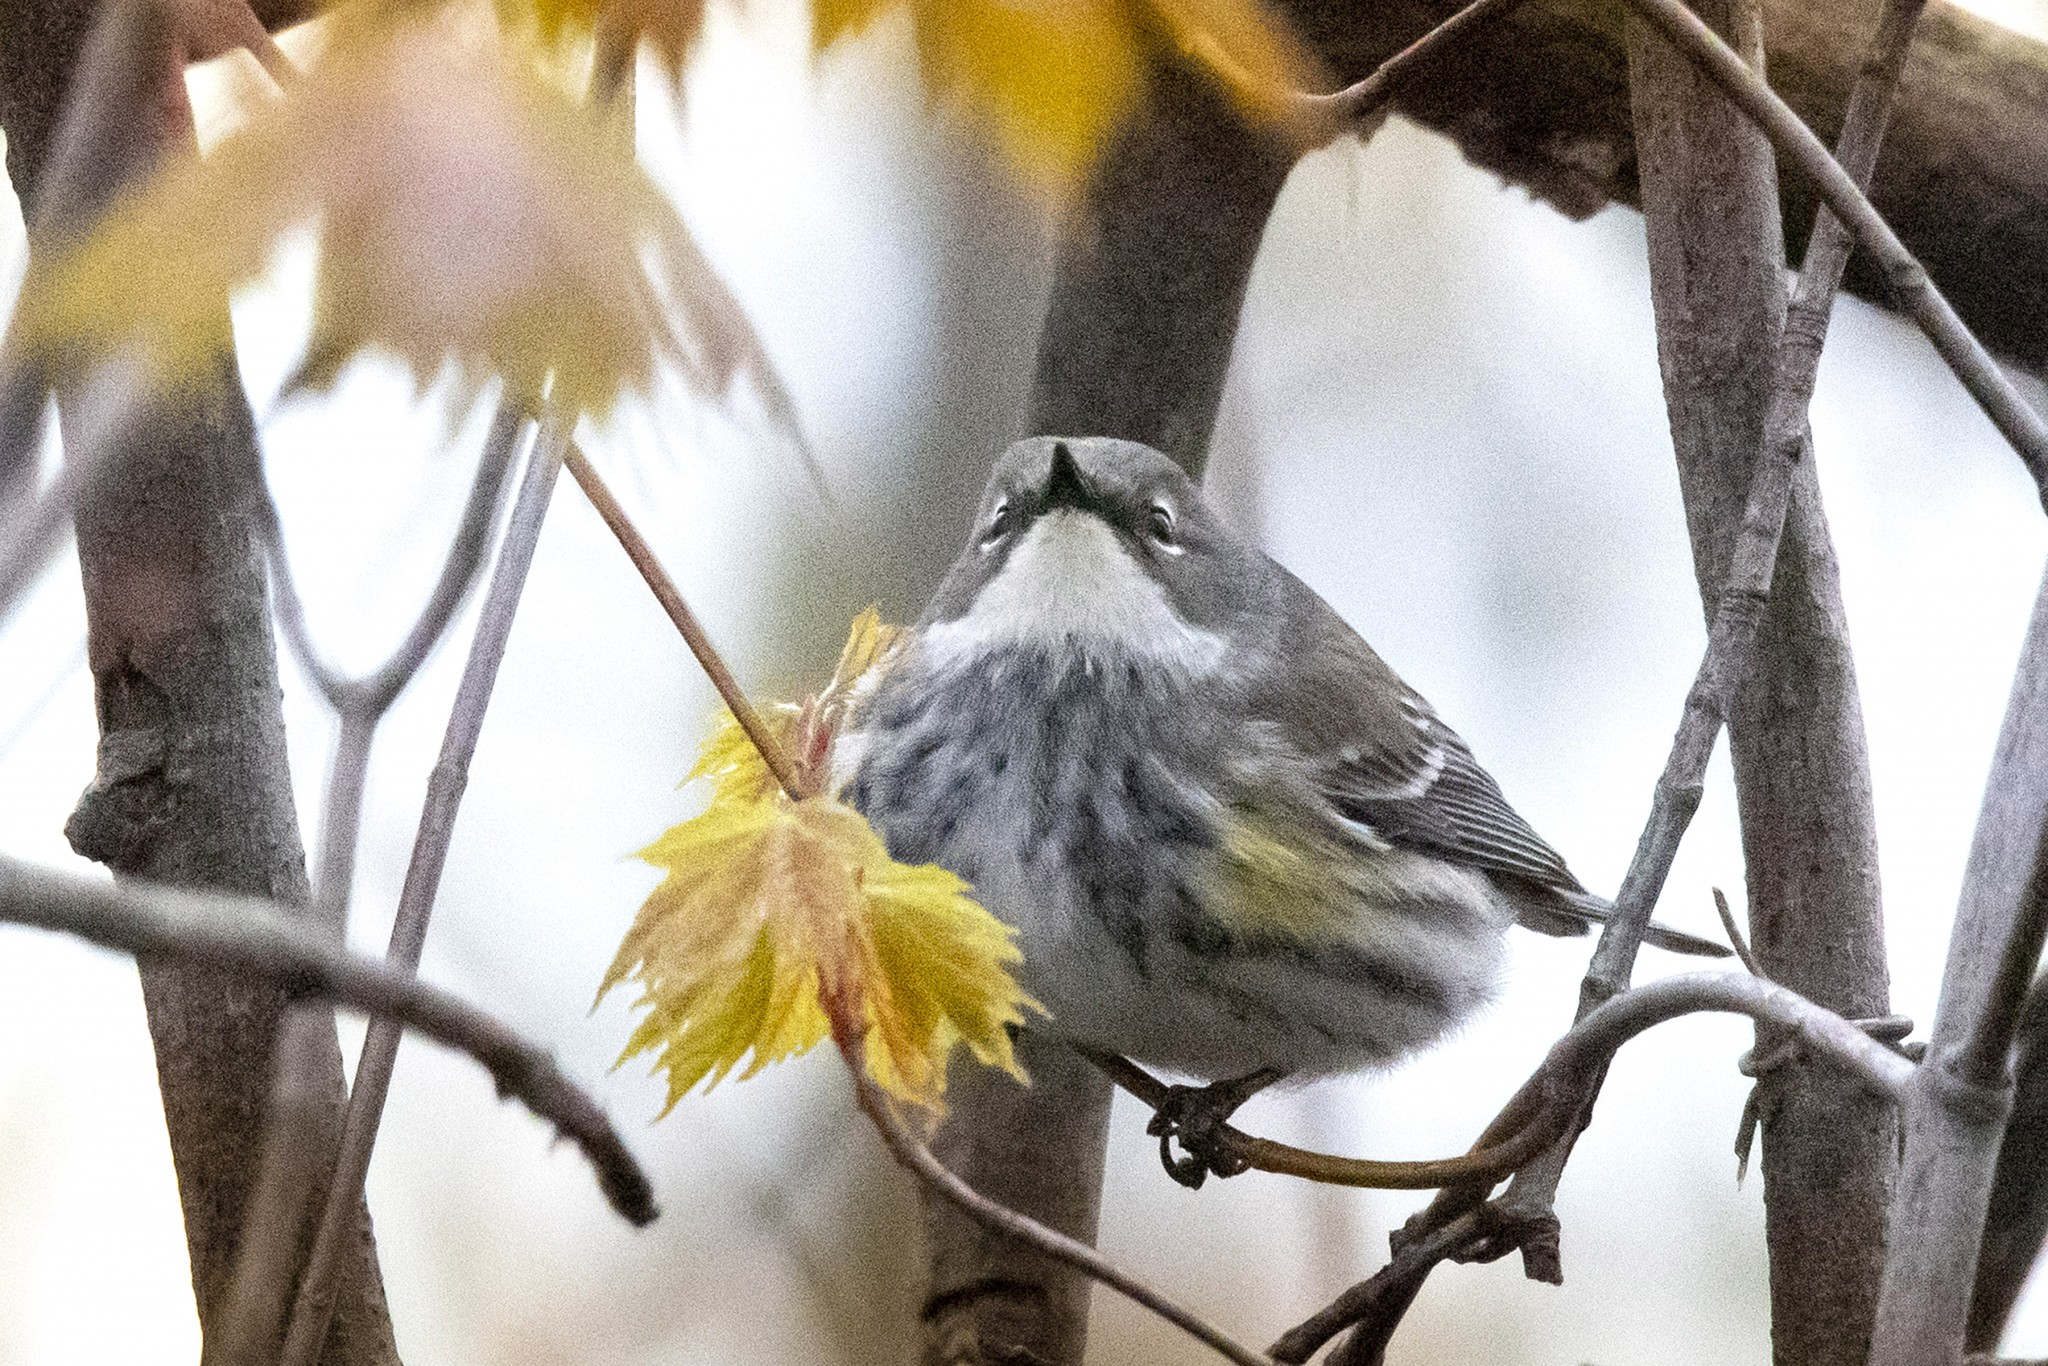 The yellow-rumped warbler is one of the most numerous species in the first wave of neotropical migrants to arrive in our area. This female yellow-rumped was photographed on May 3 last year along the Magee Marsh Bird Trail, which is closed to the public this year. (Photo by Art Weber)